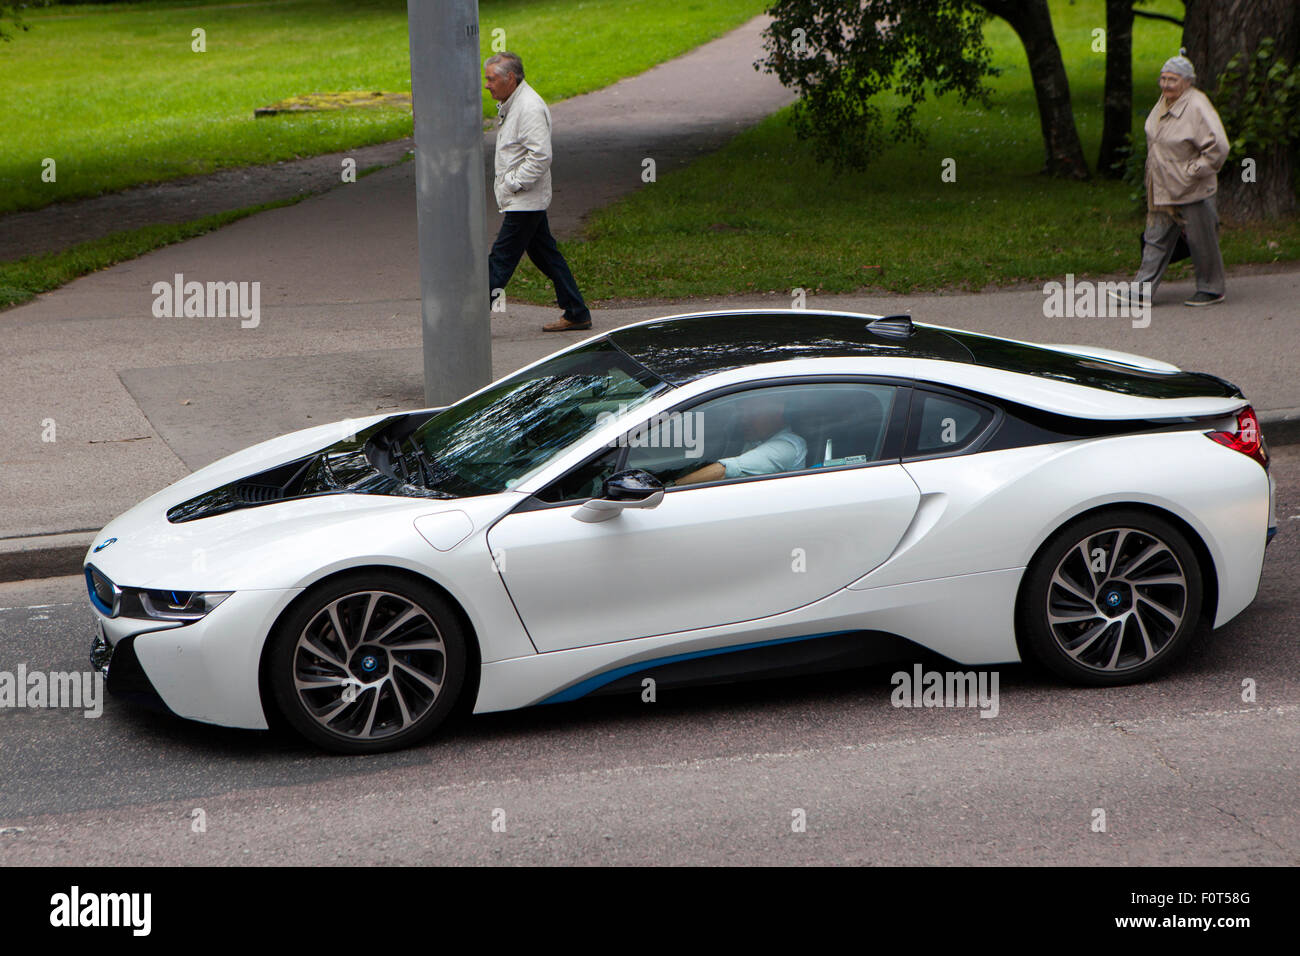 the 2015 model bmw i8 plug in hybrid sports car in white driving in stock photo royalty free. Black Bedroom Furniture Sets. Home Design Ideas